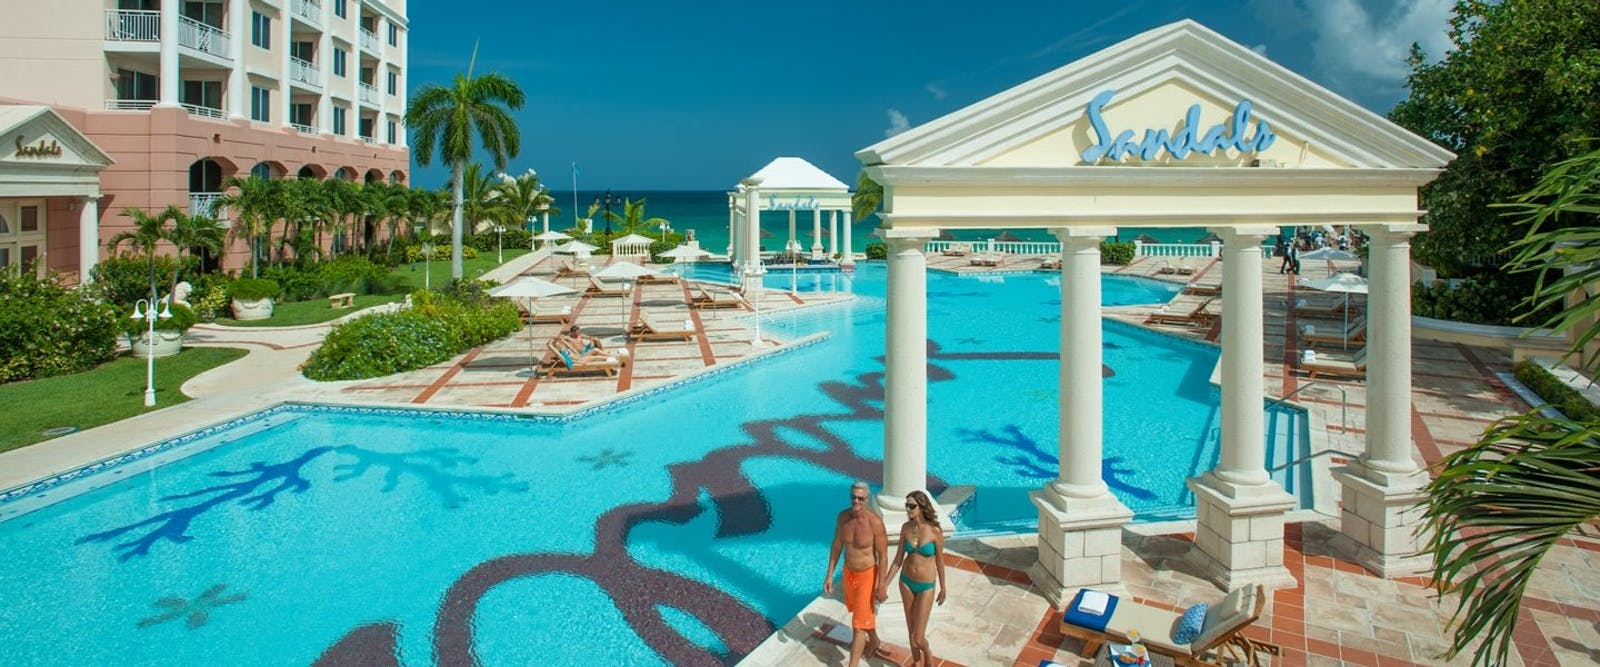 Pool at Sandals Royal Bahamian, Bahamas, Caribbean